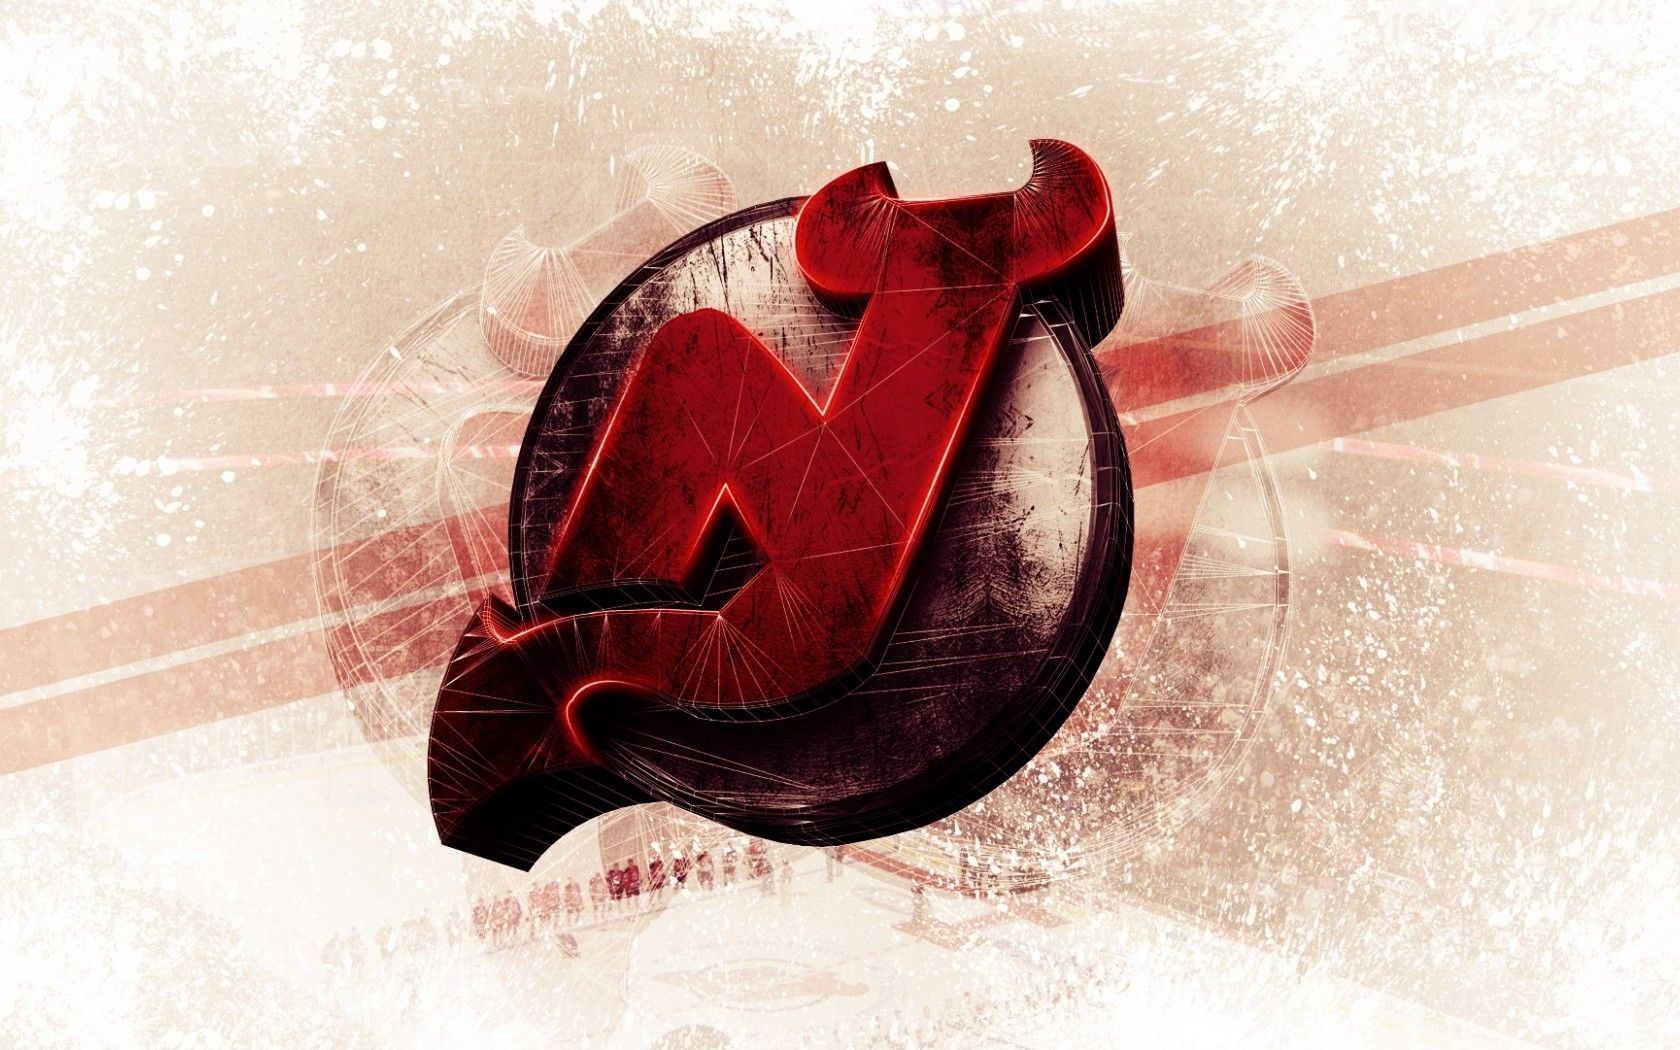 1680x1050 - New Jersey Devils Wallpapers 20